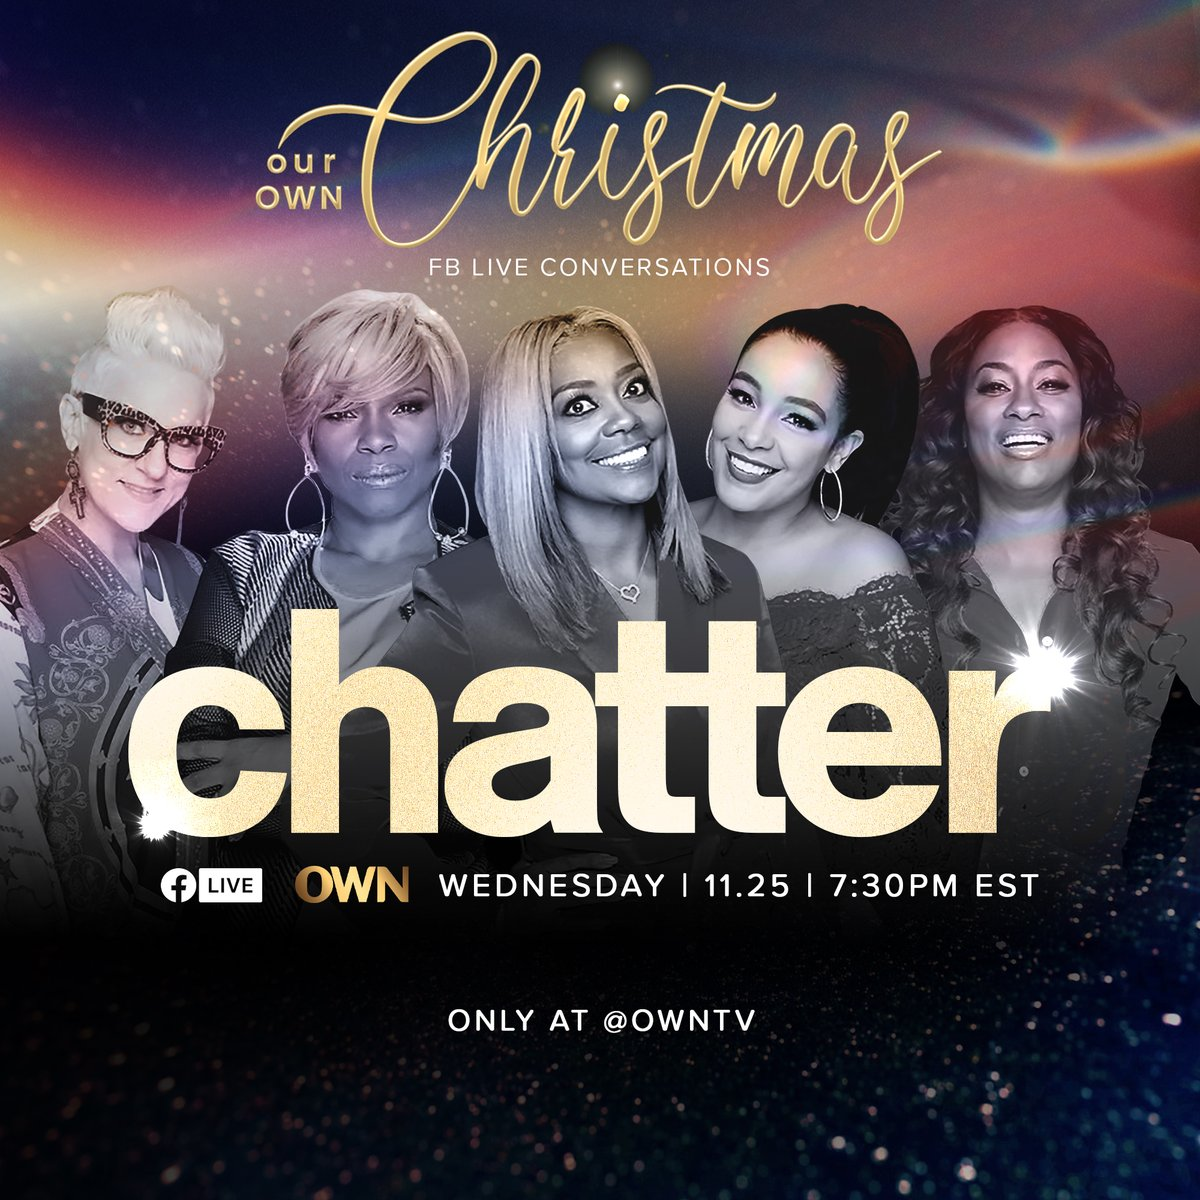 We're going LIVE on @owntv's Facebook with #ChatterTalkShow - tonight at 7:30p ET. All part of #OWNfortheHolidays https://t.co/SC7QKrfwS8